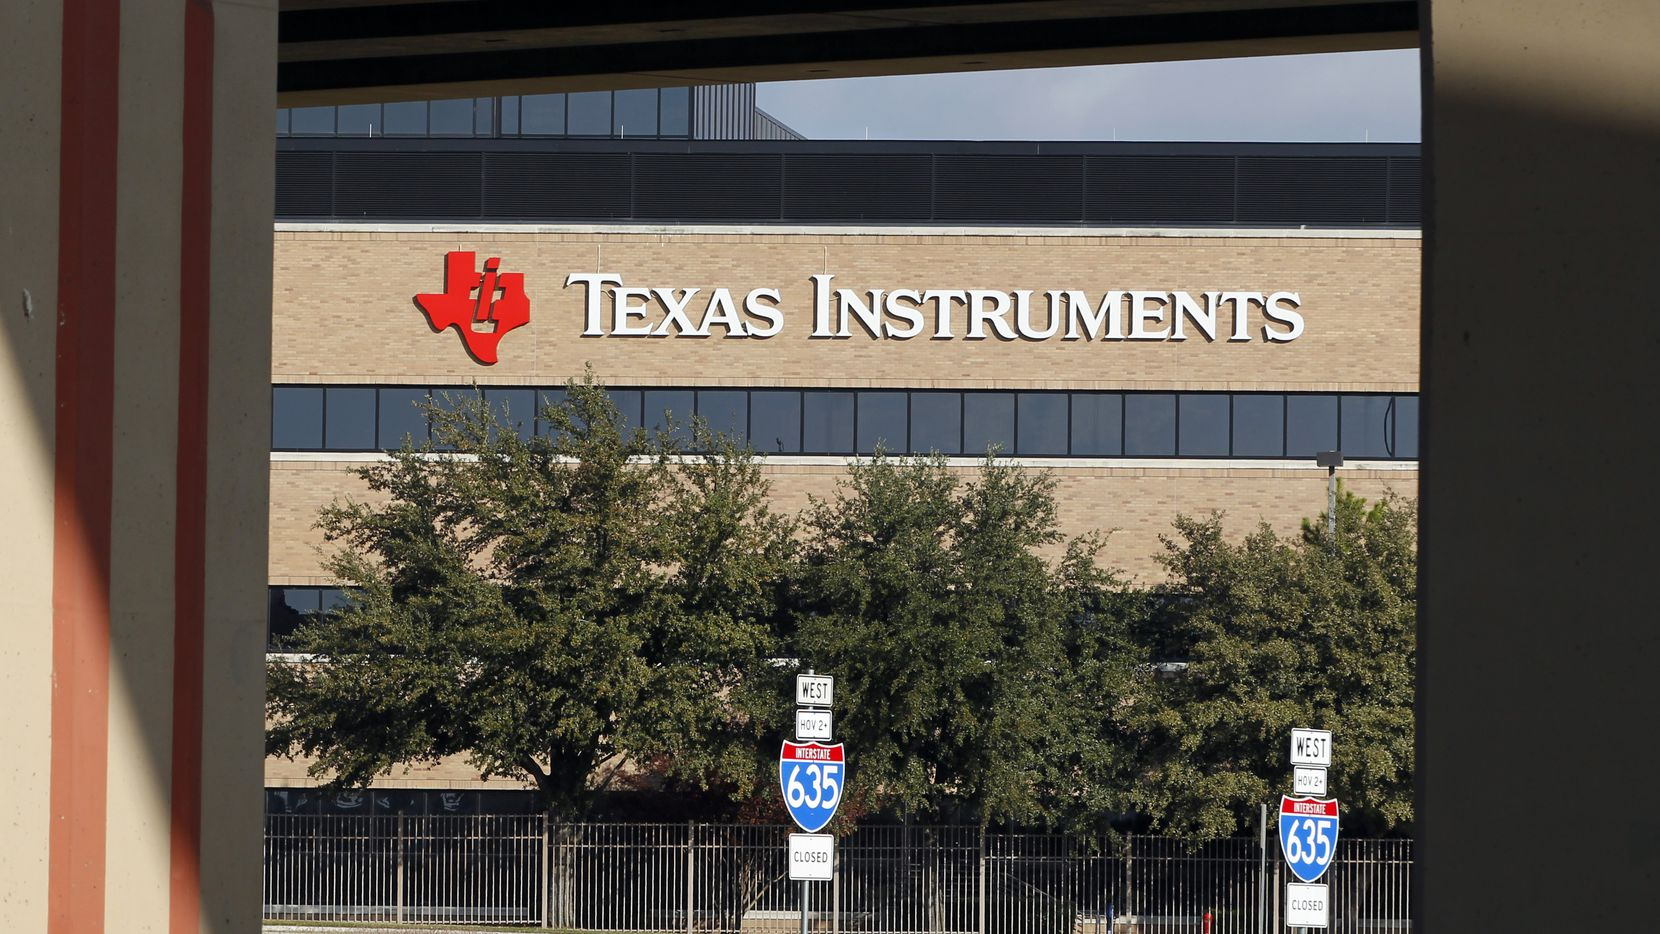 Texas Instruments said it won't pay a severance to former CEO Brian Crutcher, who resigned suddenly last week after violating the company's code of conduct.